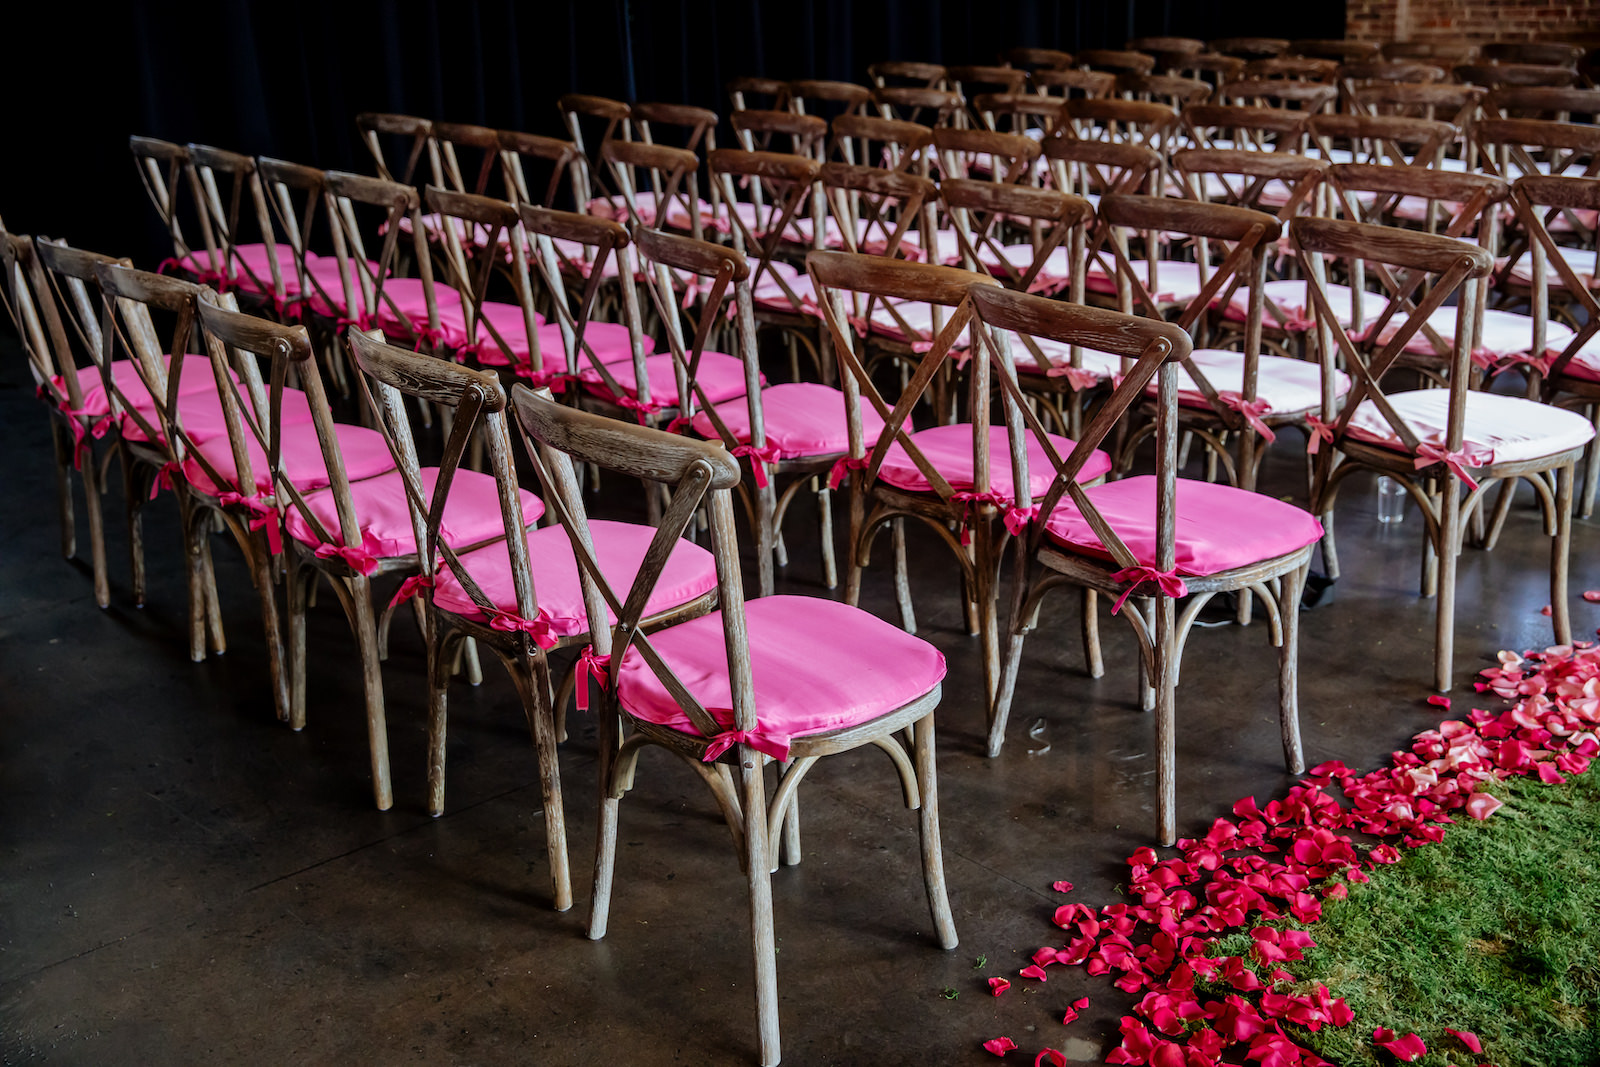 Modern Wedding Ceremony with Moss Aisle Runner with Ombre Pink and White Rose Petals   Wood Cross Back Chairs with Ombre Pink Cushion Covers